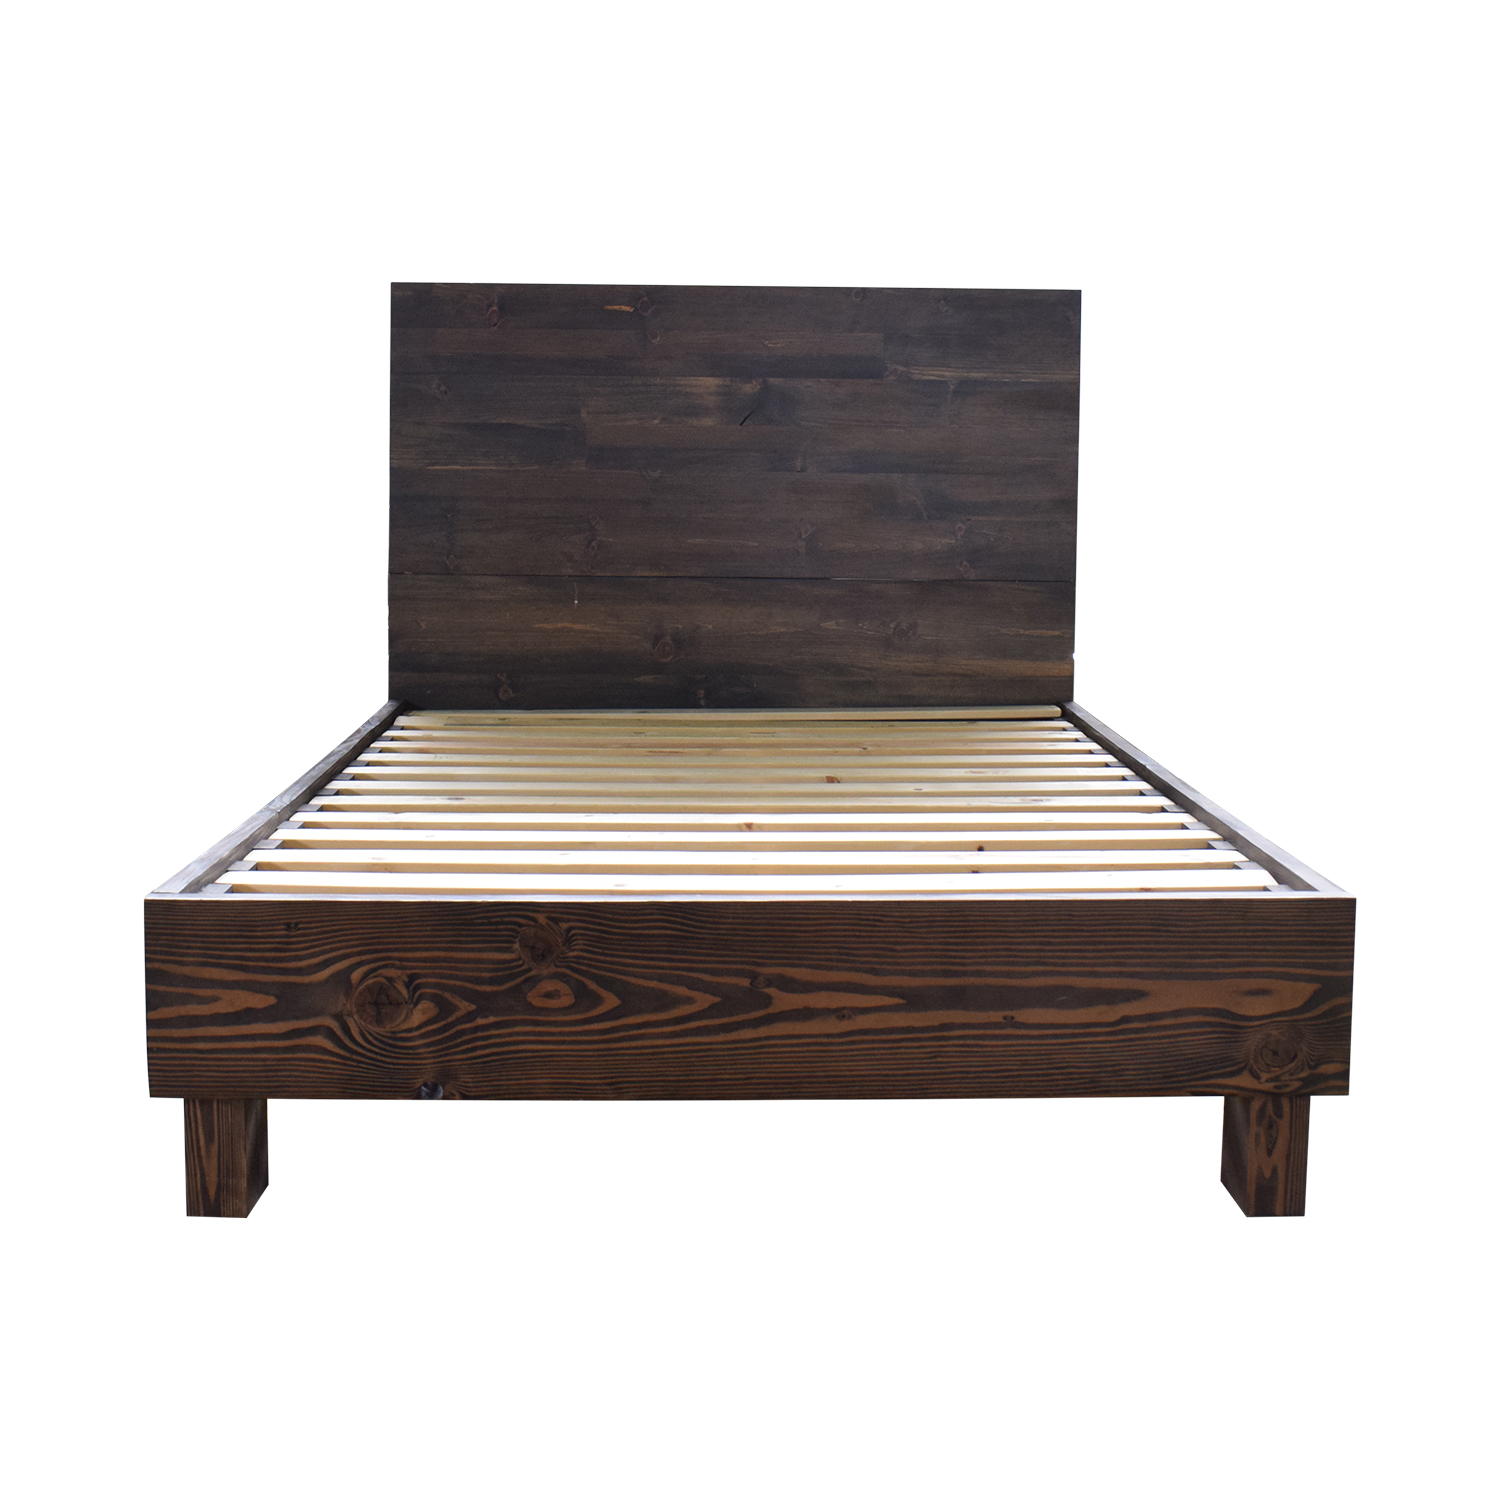 Etsy Wooden Queen Bed Frame / Bed Frames